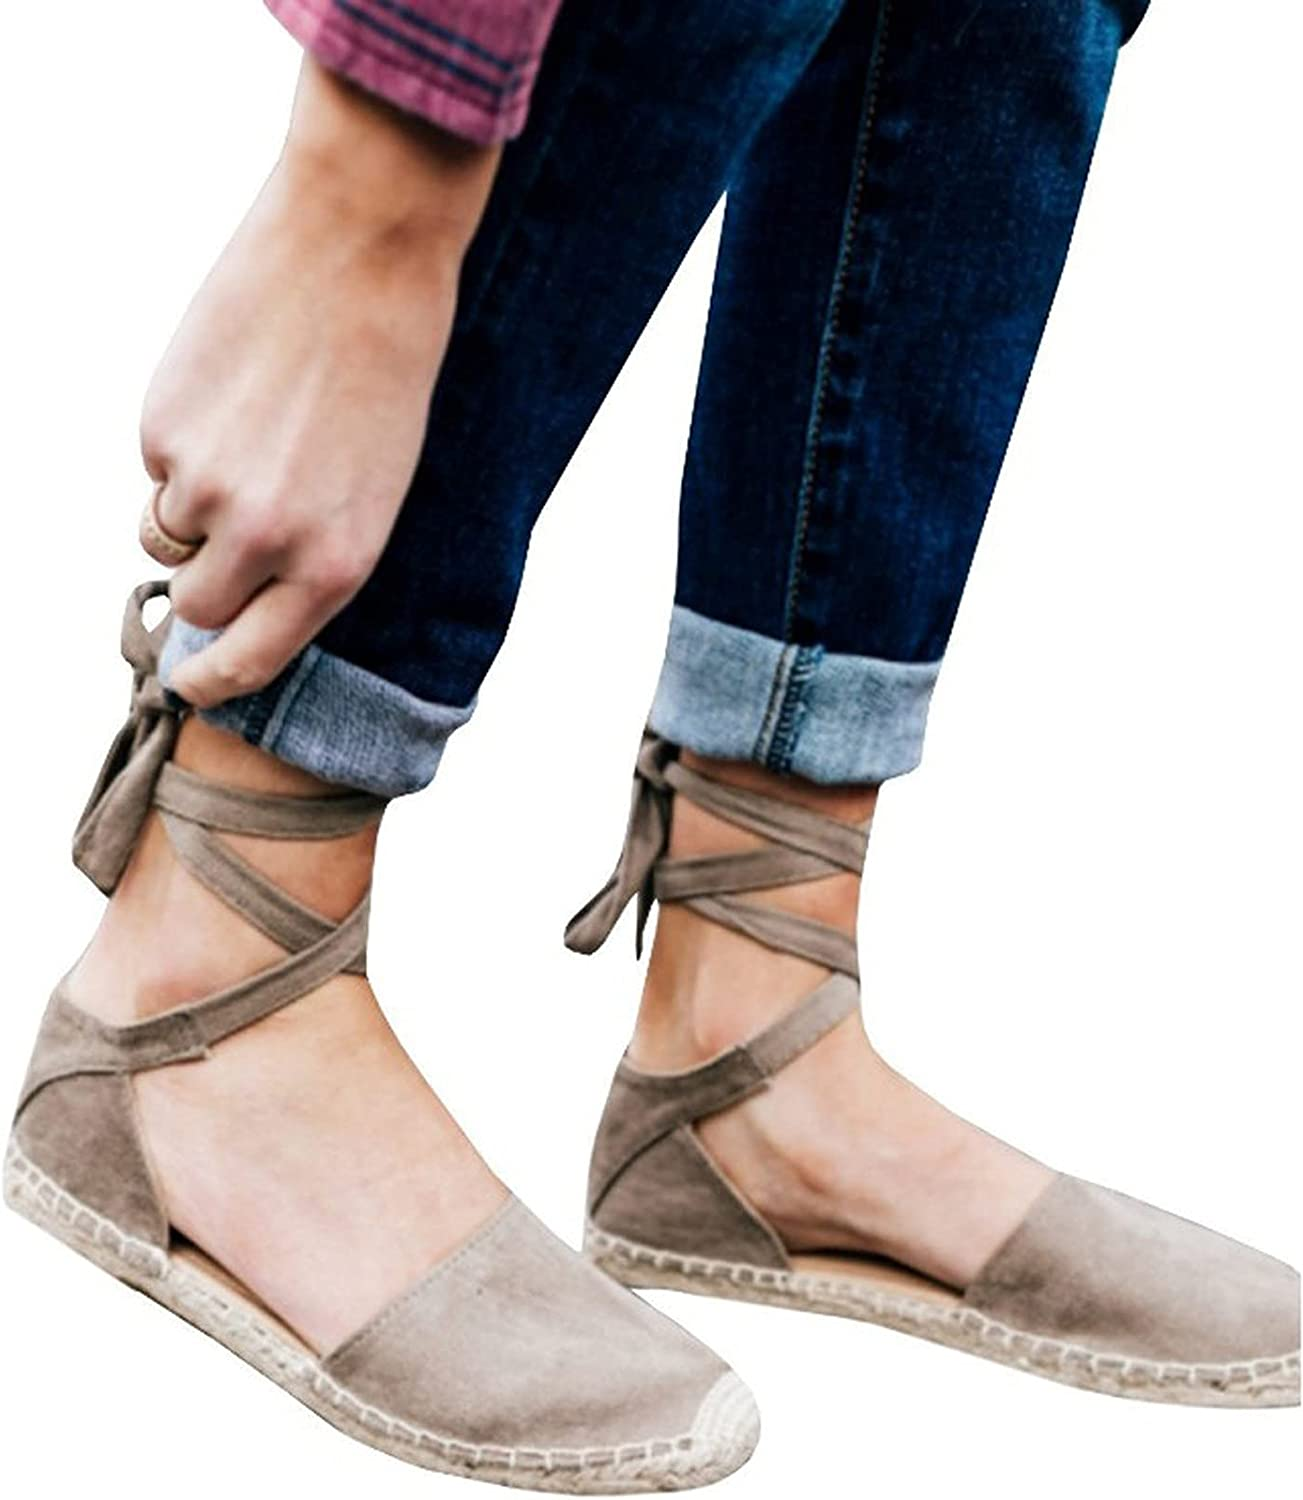 Hgndbloo Flat Platform Seasonal Wrap Introduction Sandals San Francisco Mall for Slippers Women Outdoor Casual